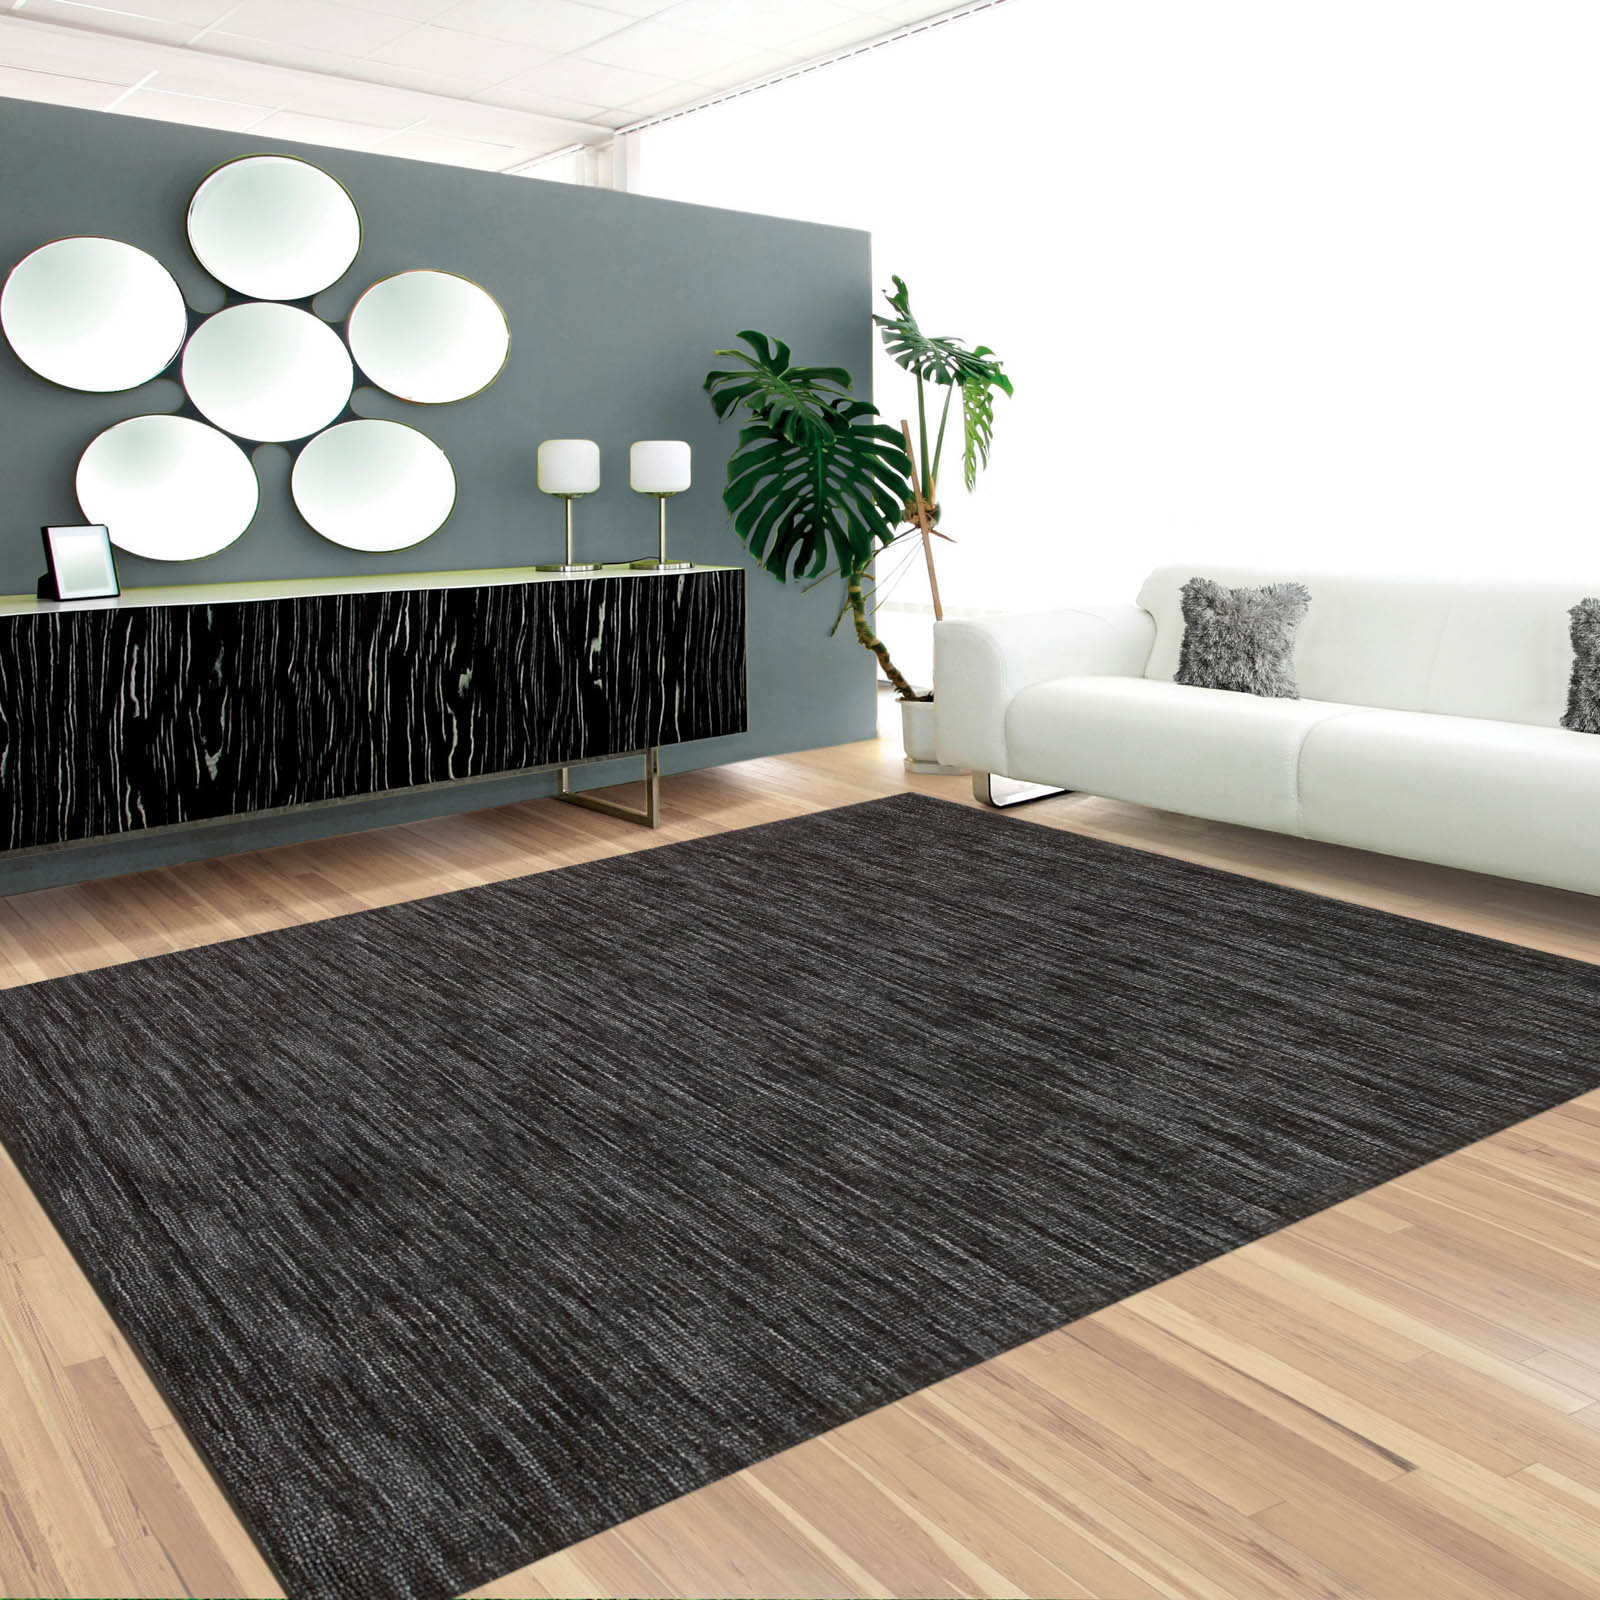 Waverley Grand Suite Rugs in Charcoal